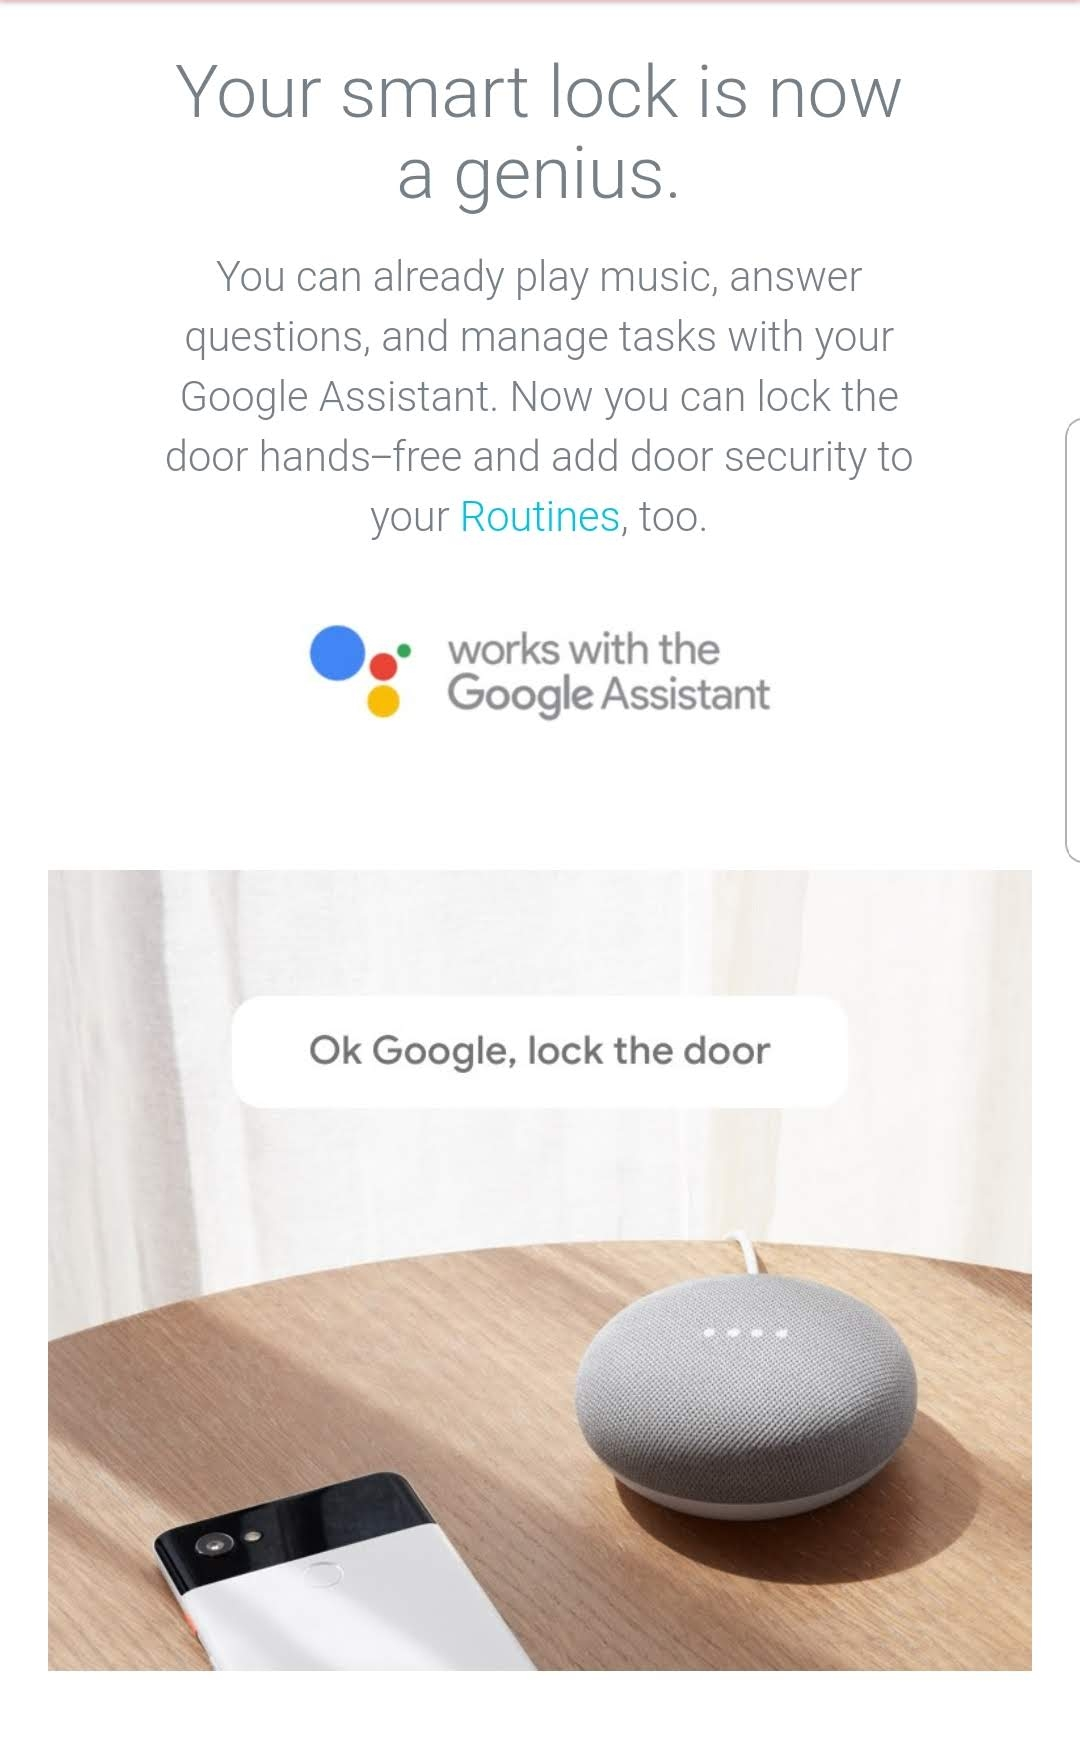 NEst Smart Lock Now Works With Google Home To Lock The Nest X Yale Lock With Voice.